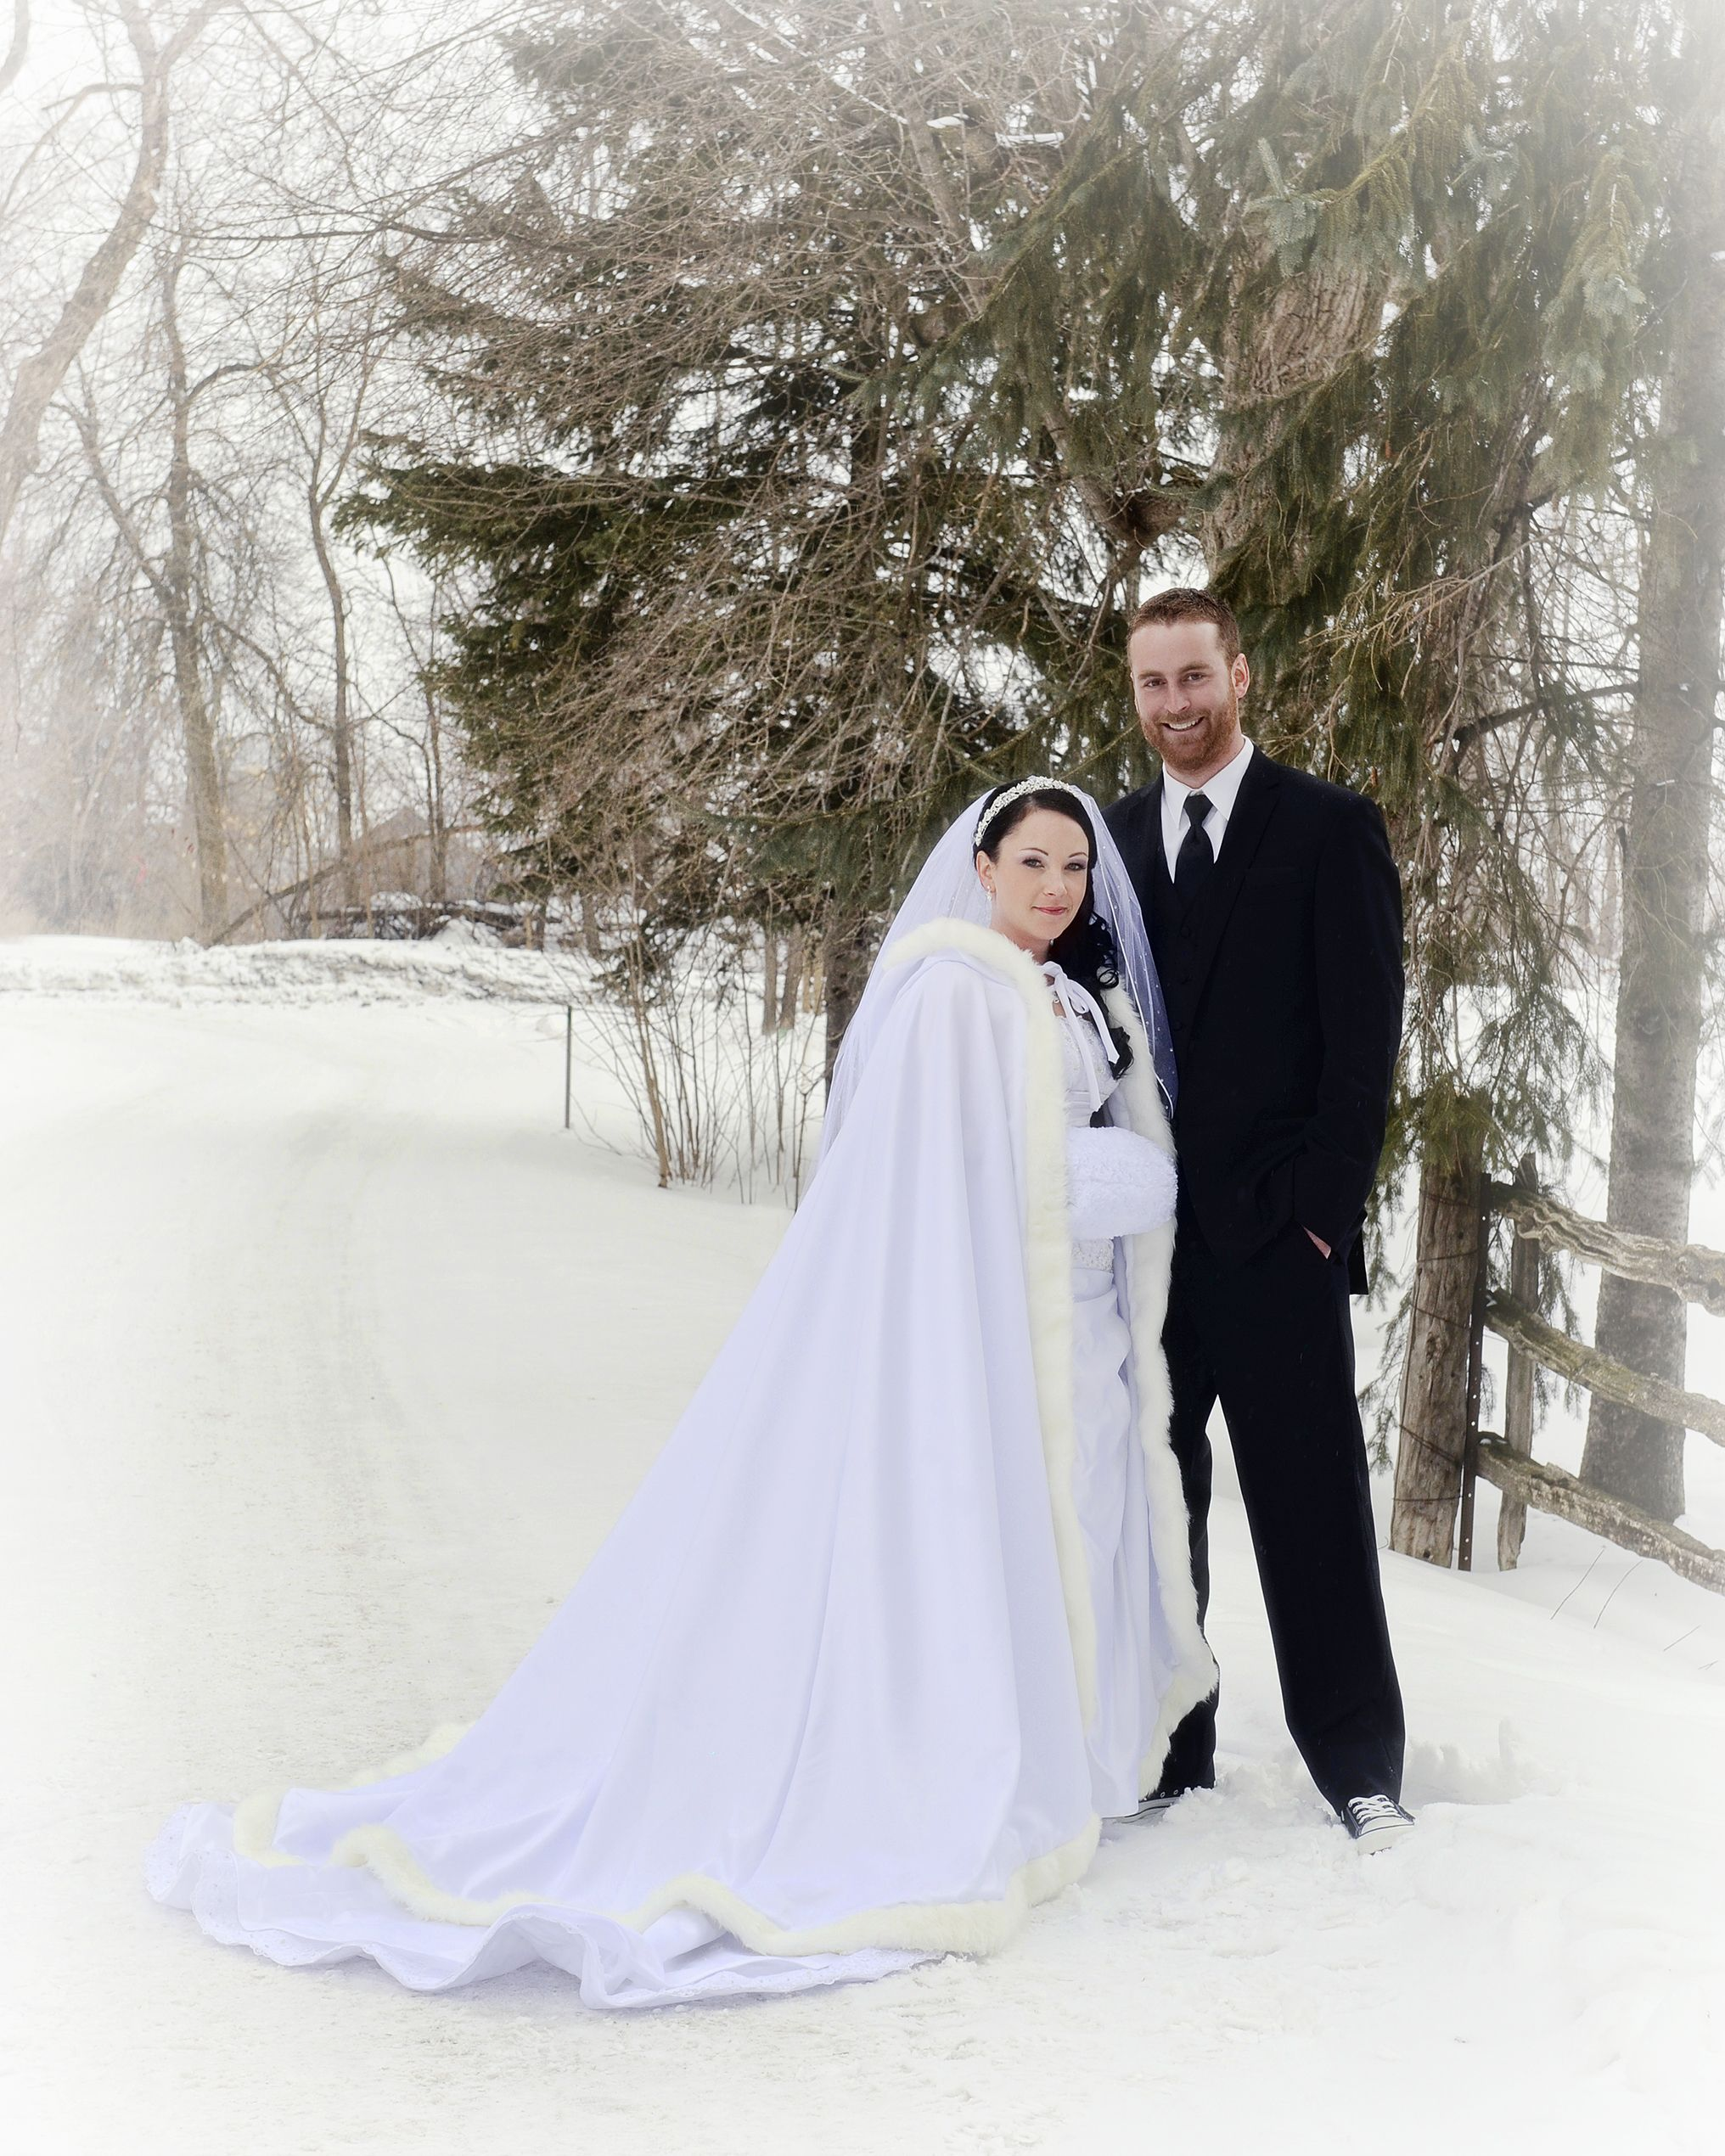 A Rustic Winter Wedding at Strathmere in North Gower ...